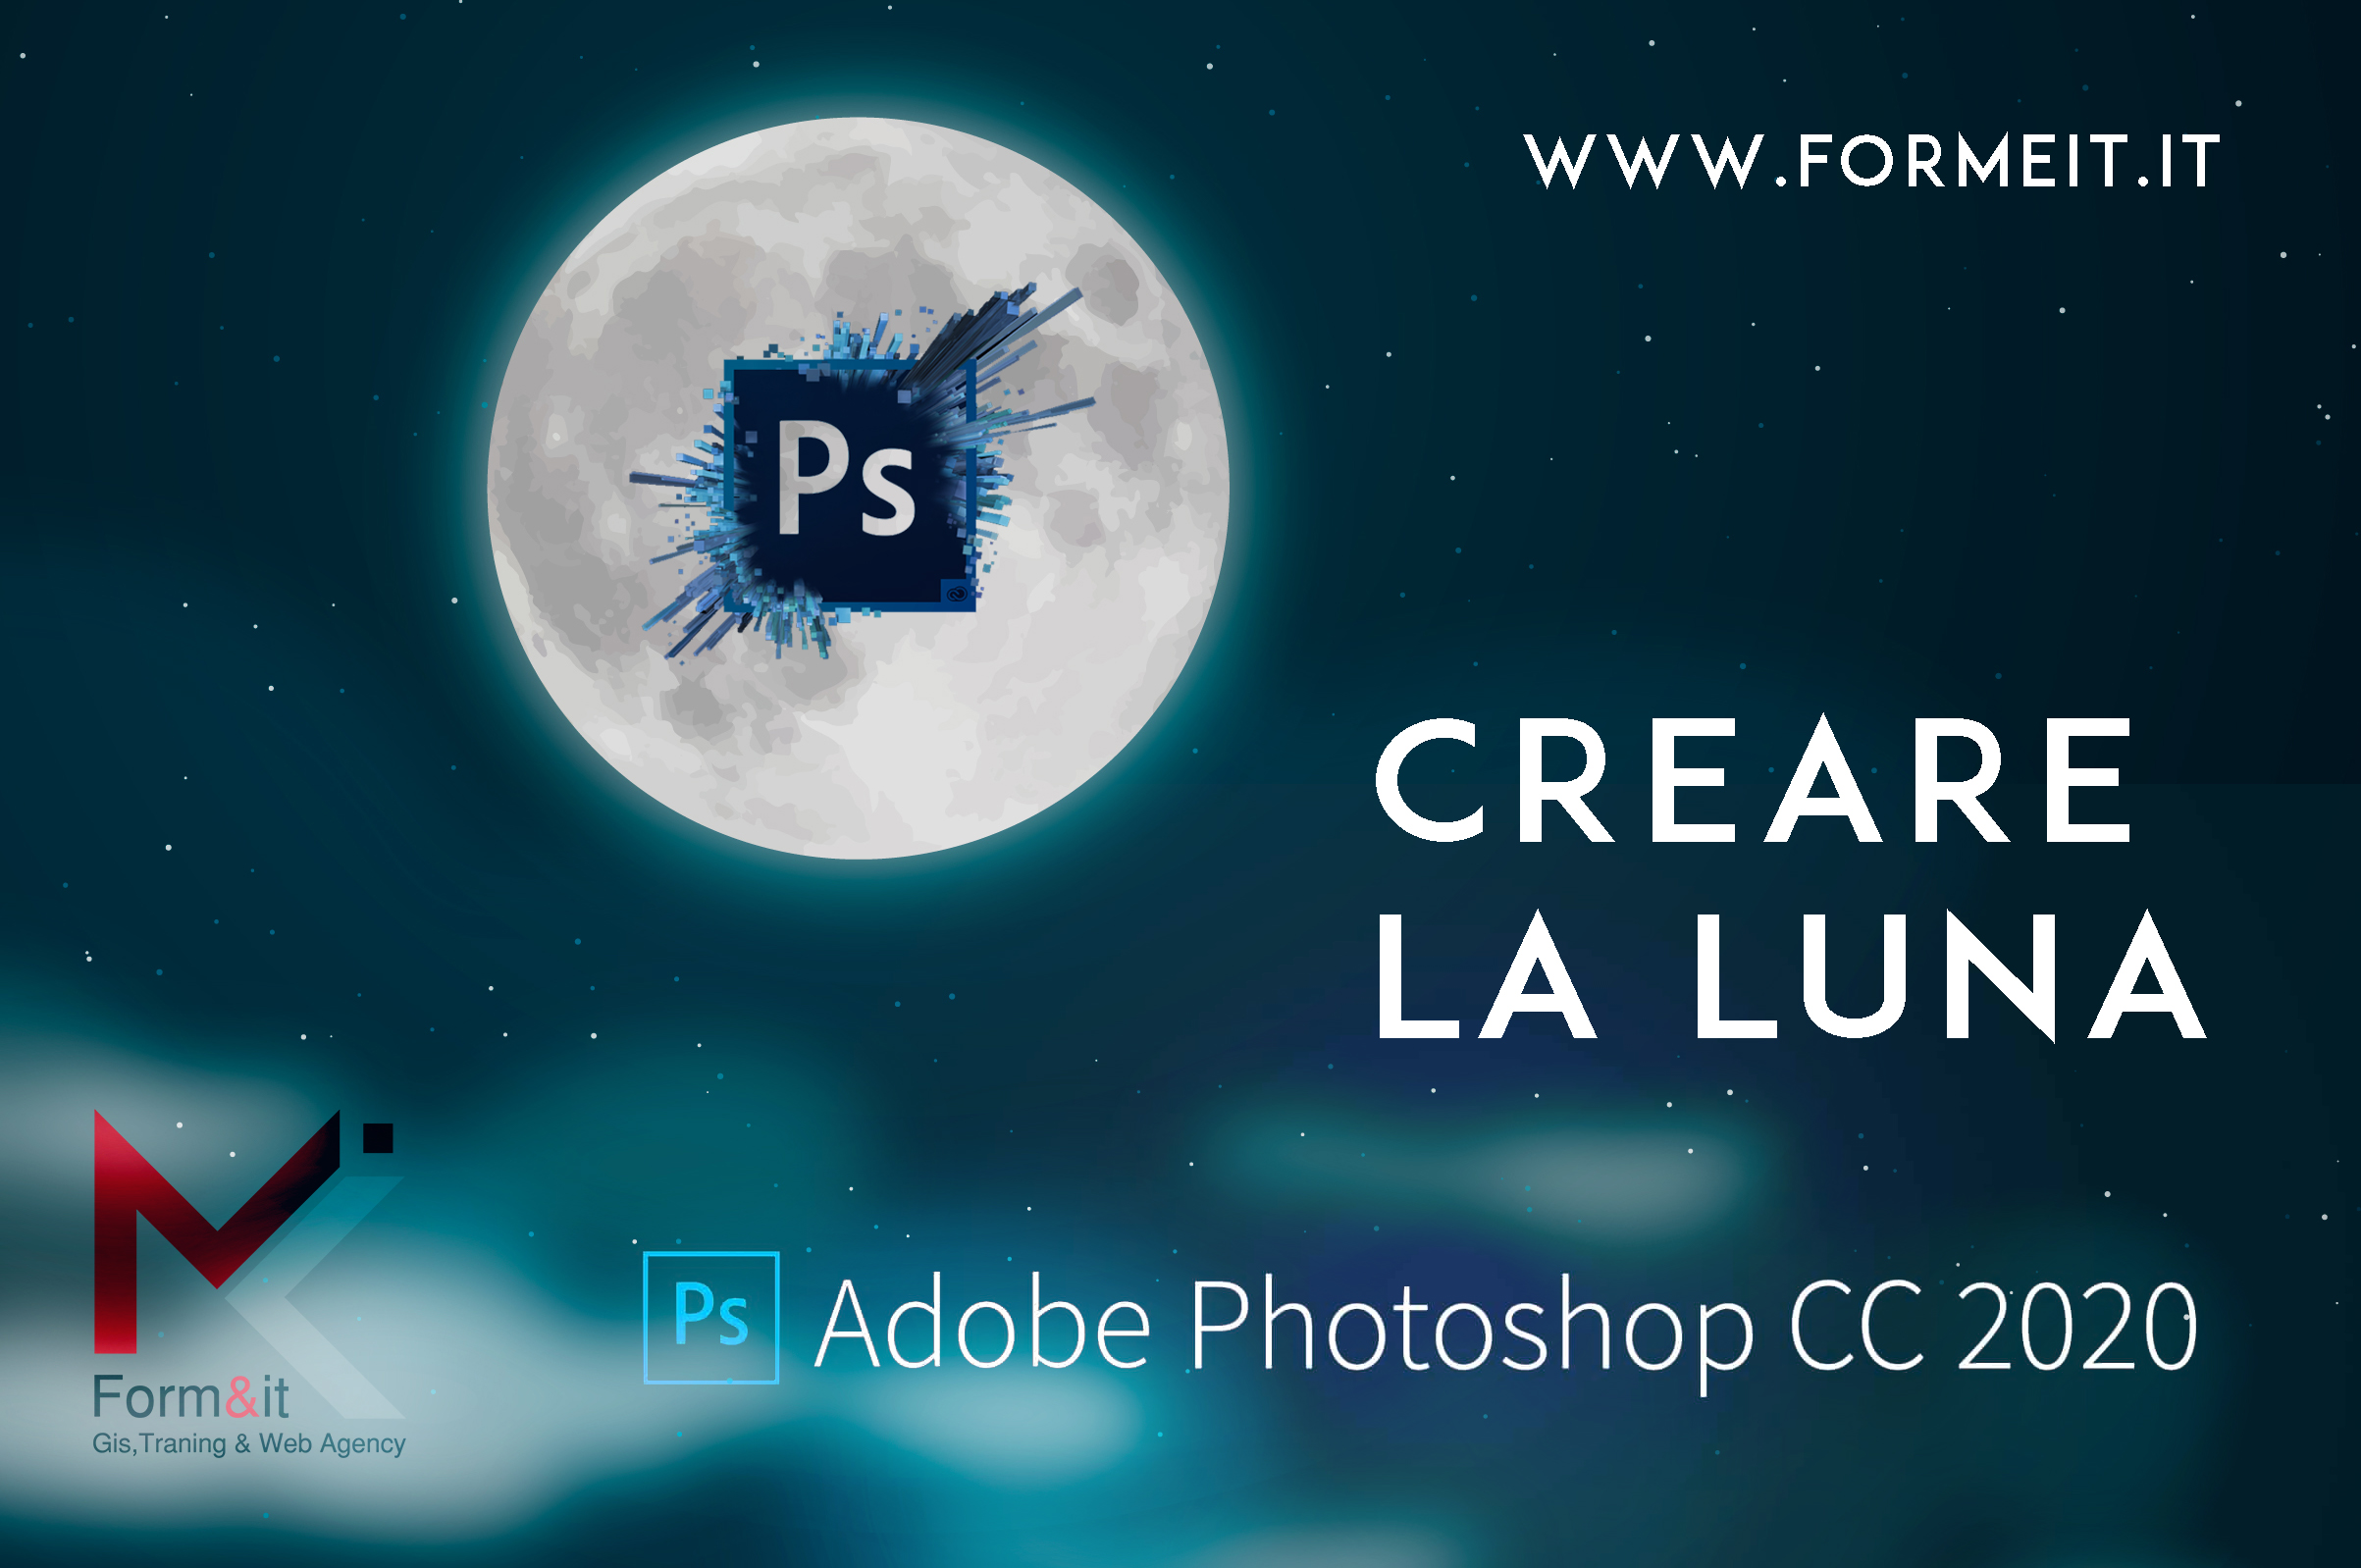 Creare La #Luna con #Photoshop  🌝🌒⭐️👨‍🚀👩‍🚀👨‍🚀